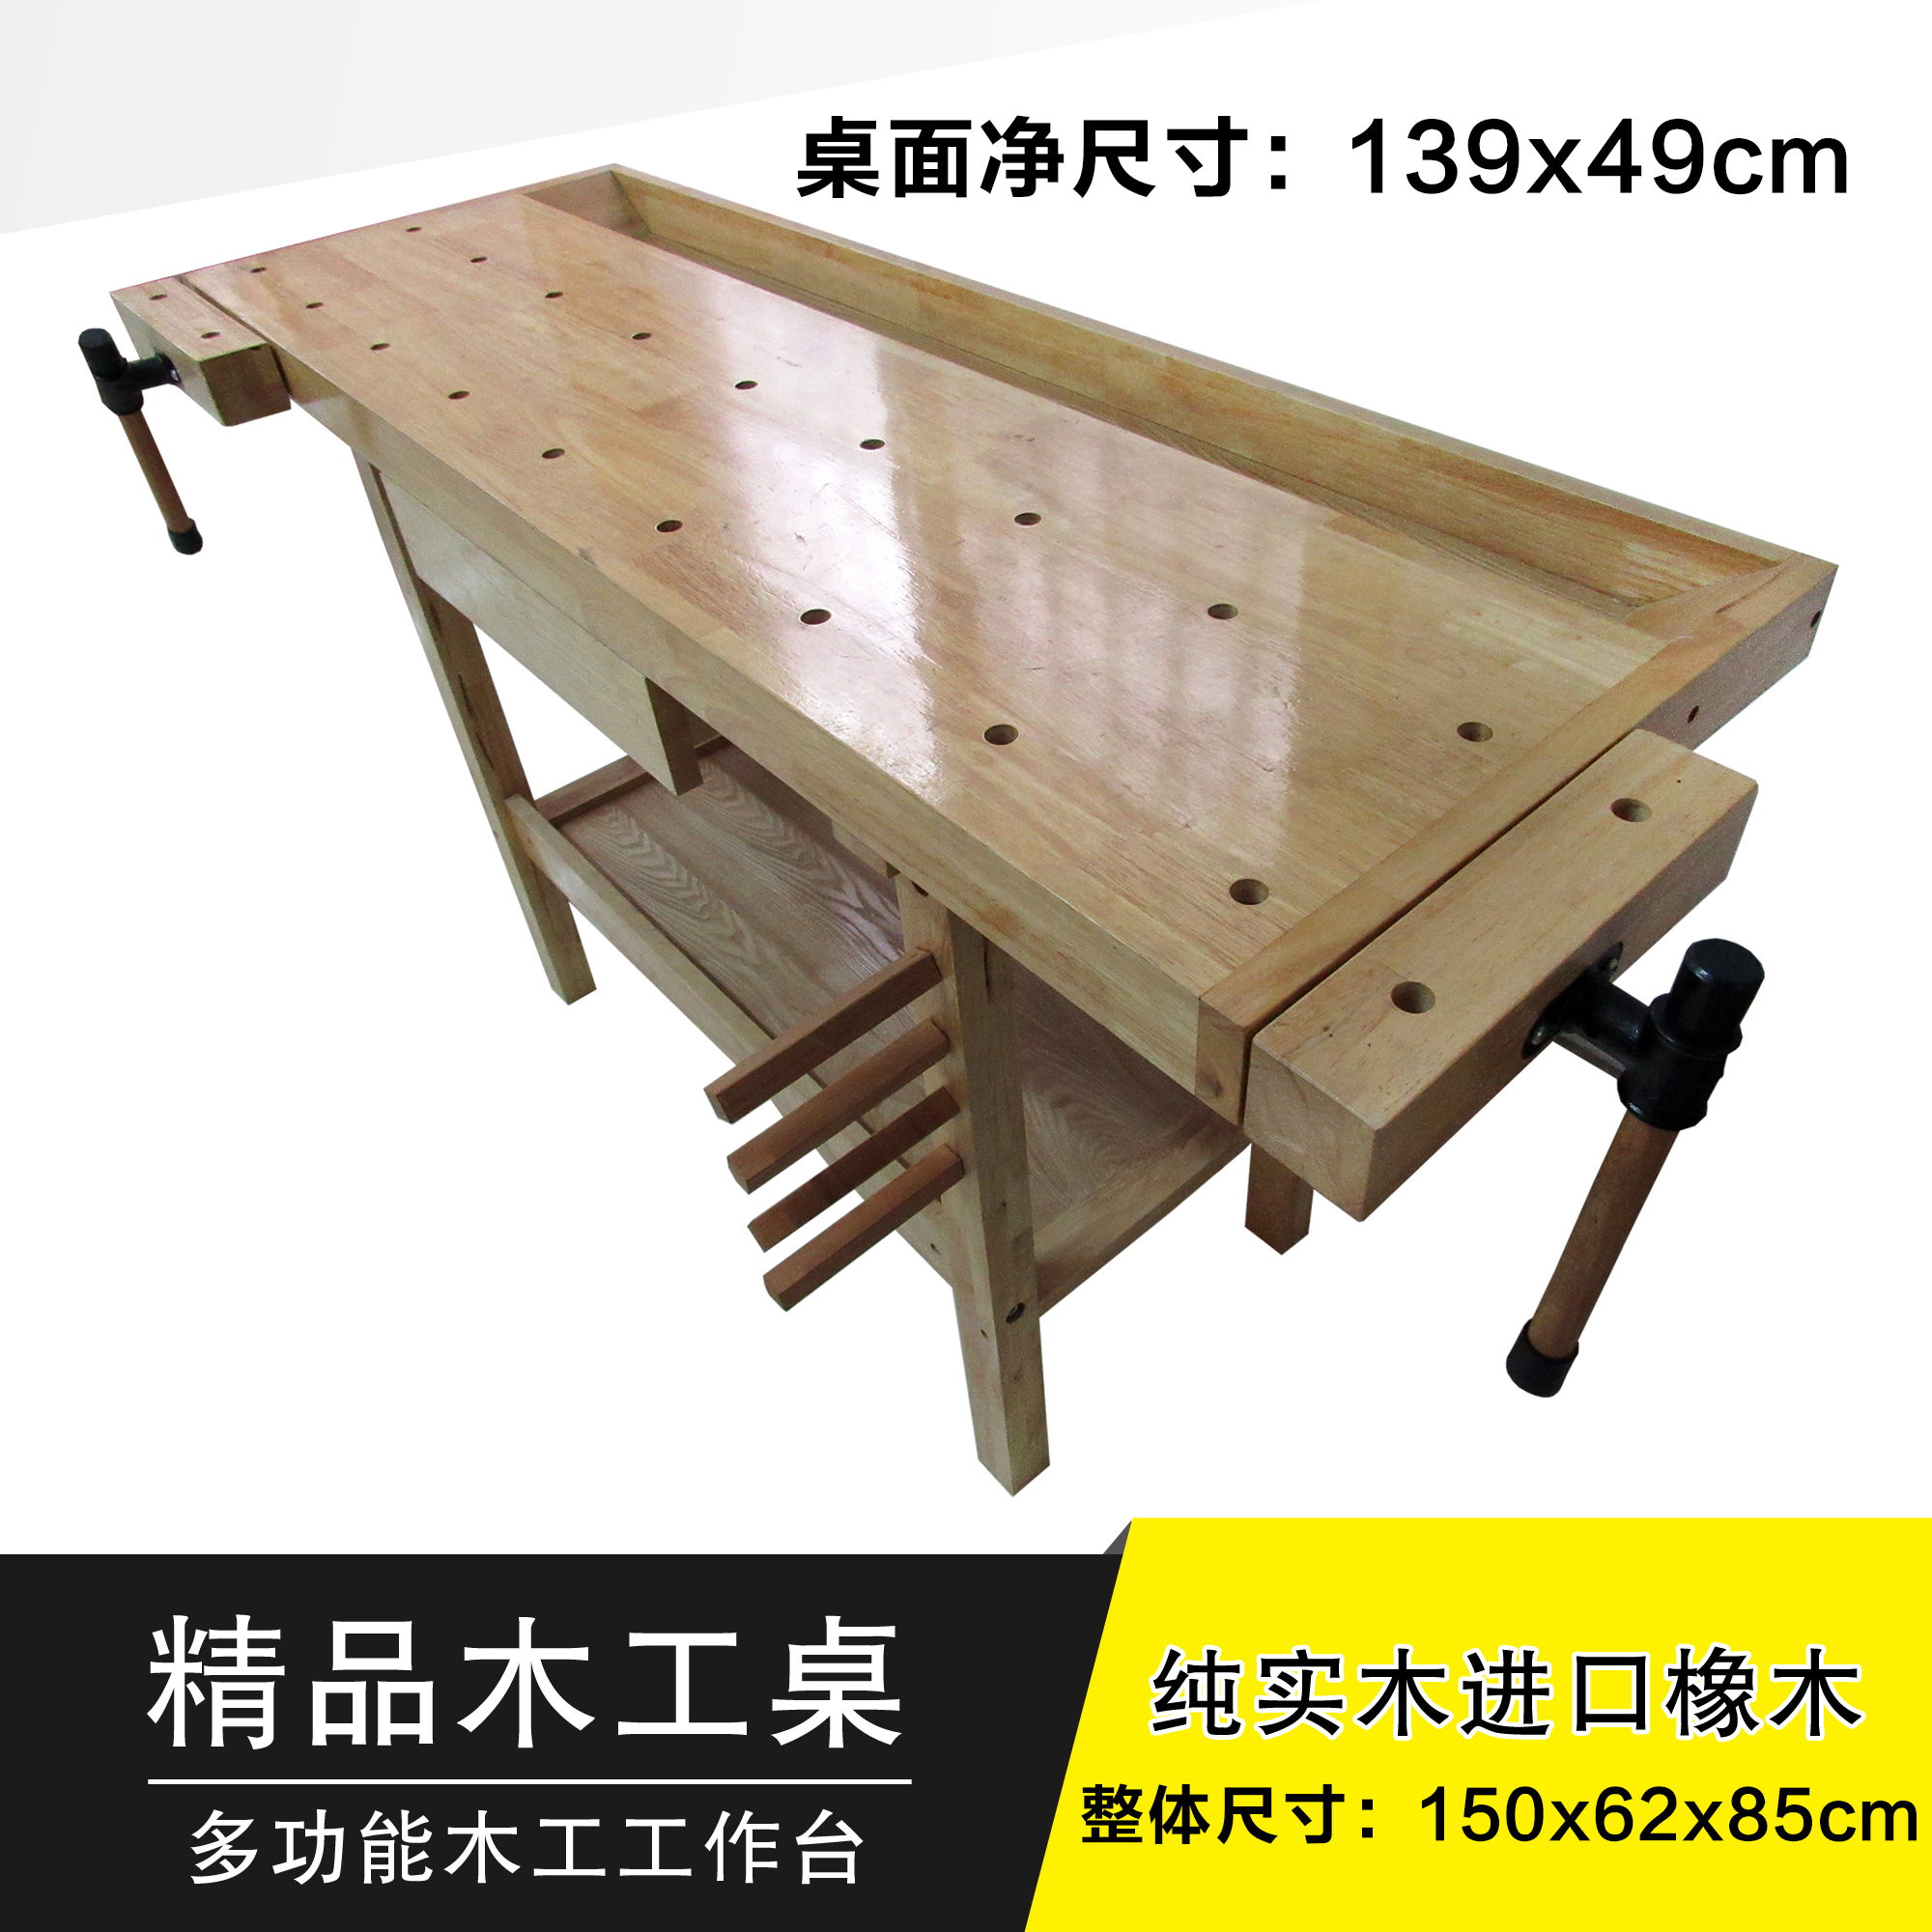 Yile Wood Solid Wood Woodworking Table Multi Purpose Woodworking